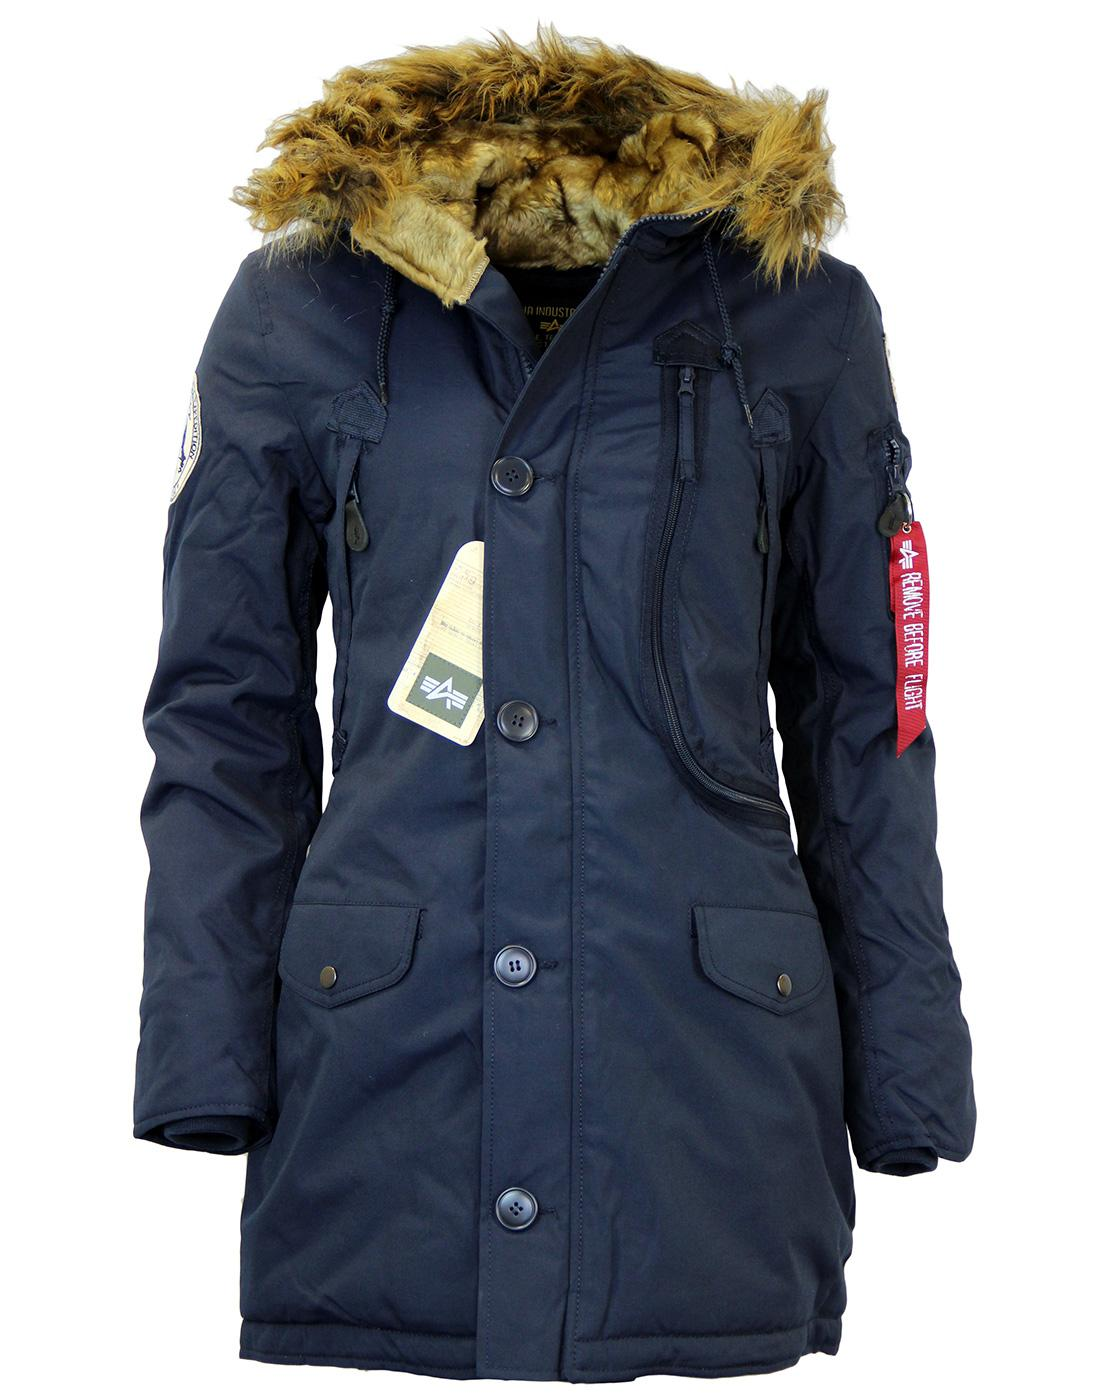 Polar ALPHA INDUSTRIES Retro Mod Womens Parka (RB)